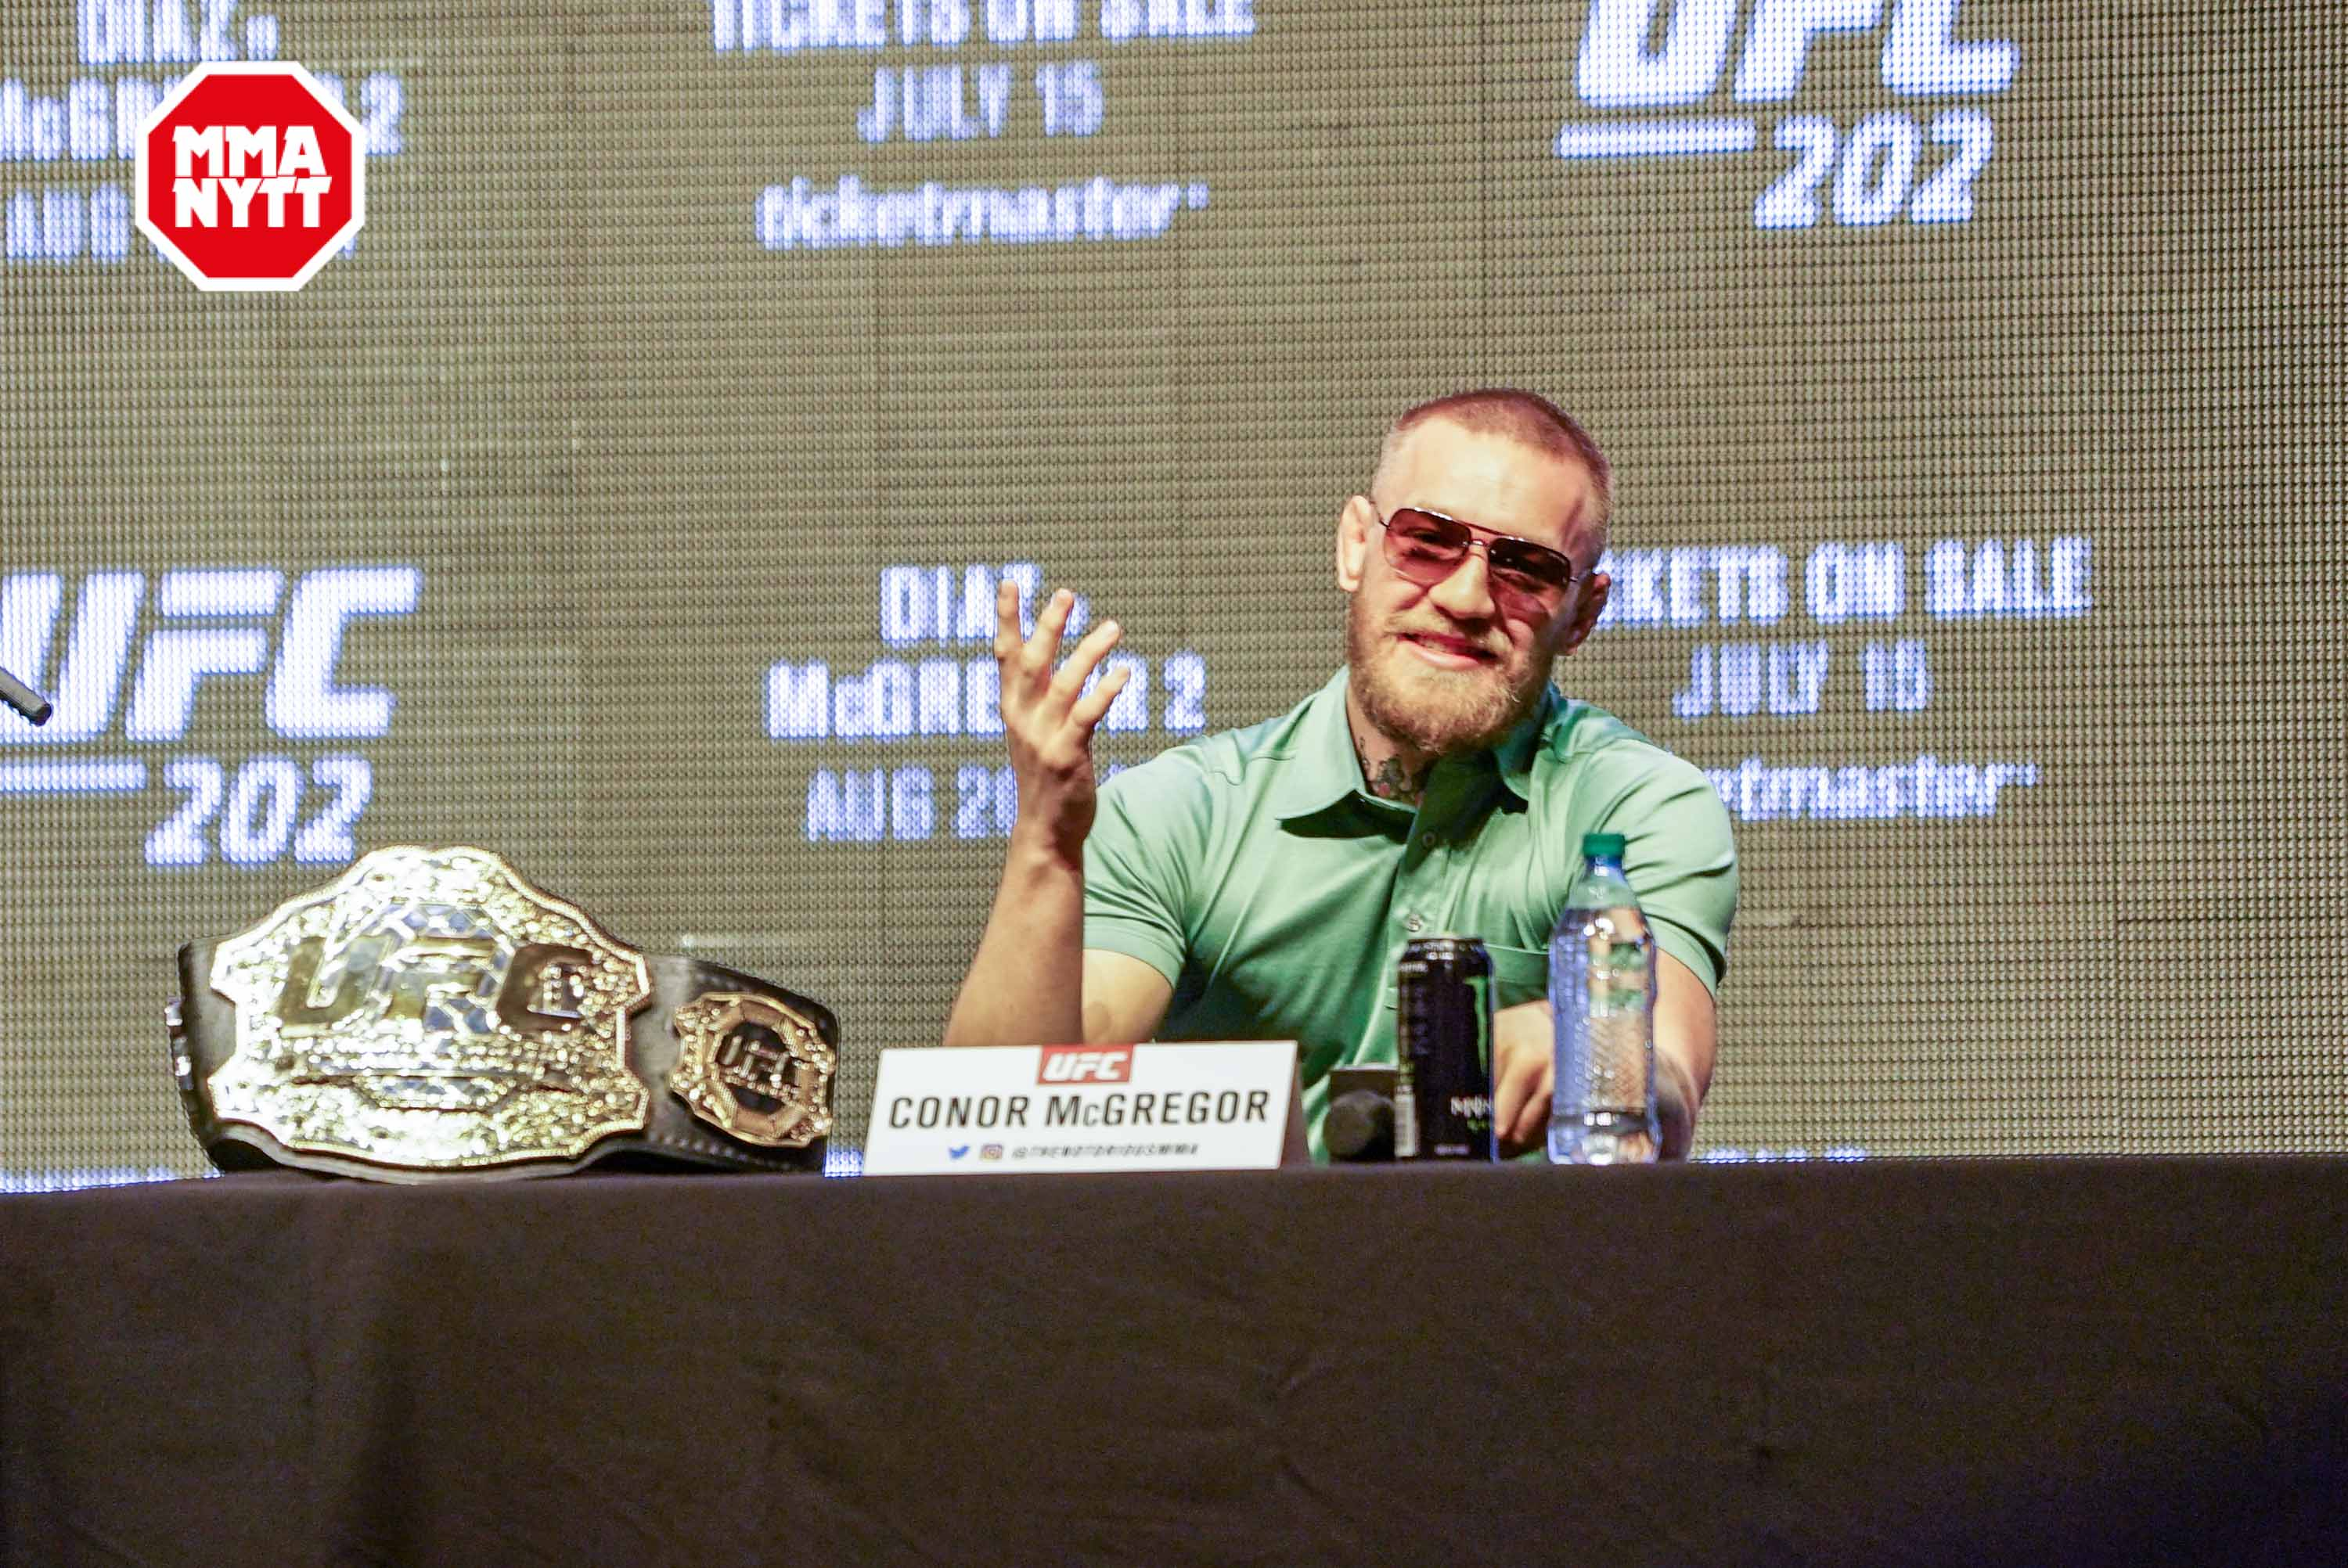 UFC 200 Las Vegas Conor McGregor 20160707 MMAnytt.se Media Day Vince Cachero